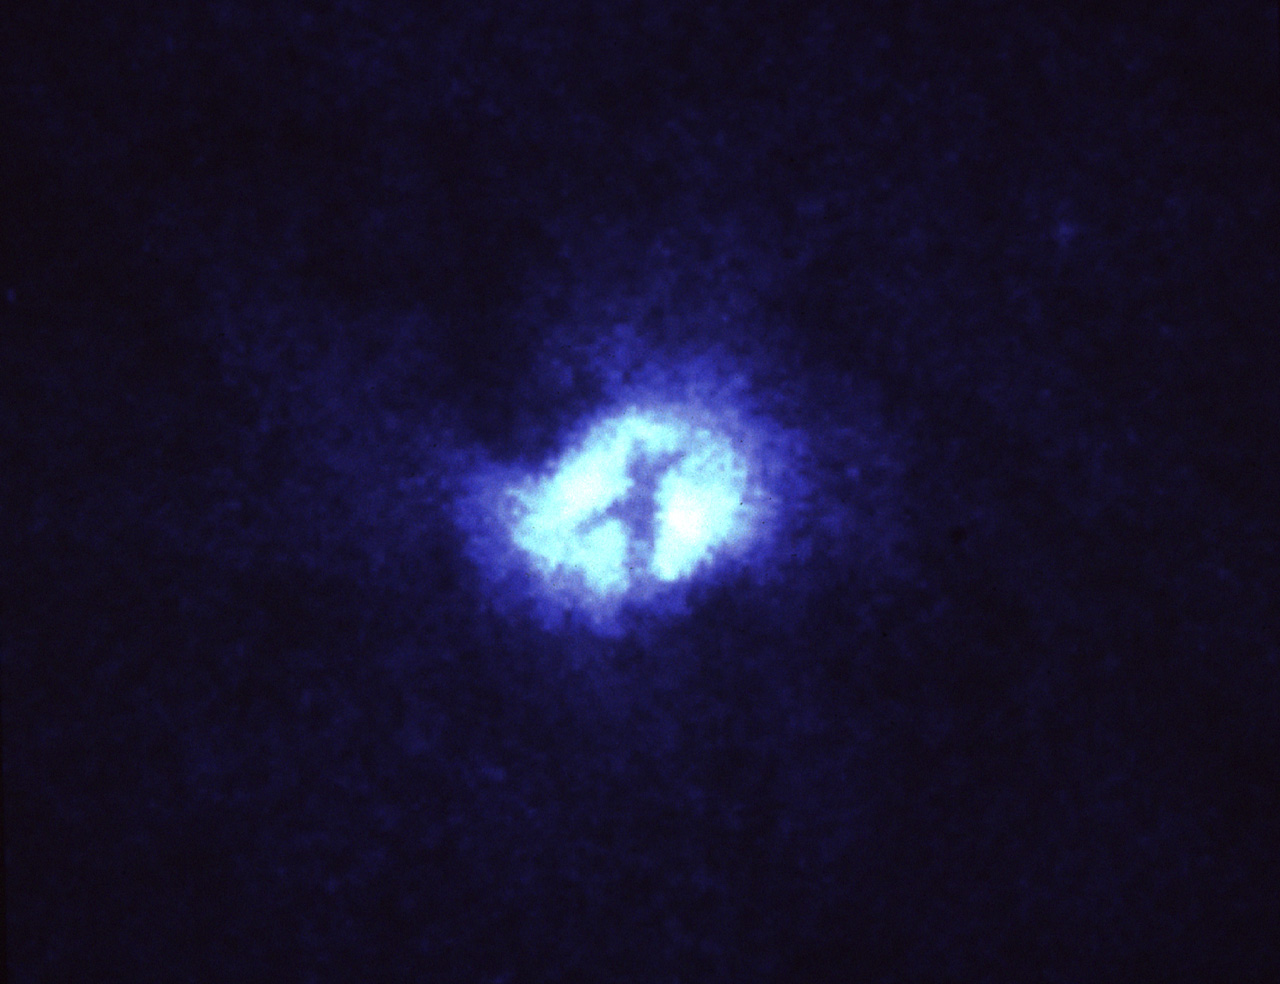 cross of hubble hubble cross m51 whirlpool galaxy sky